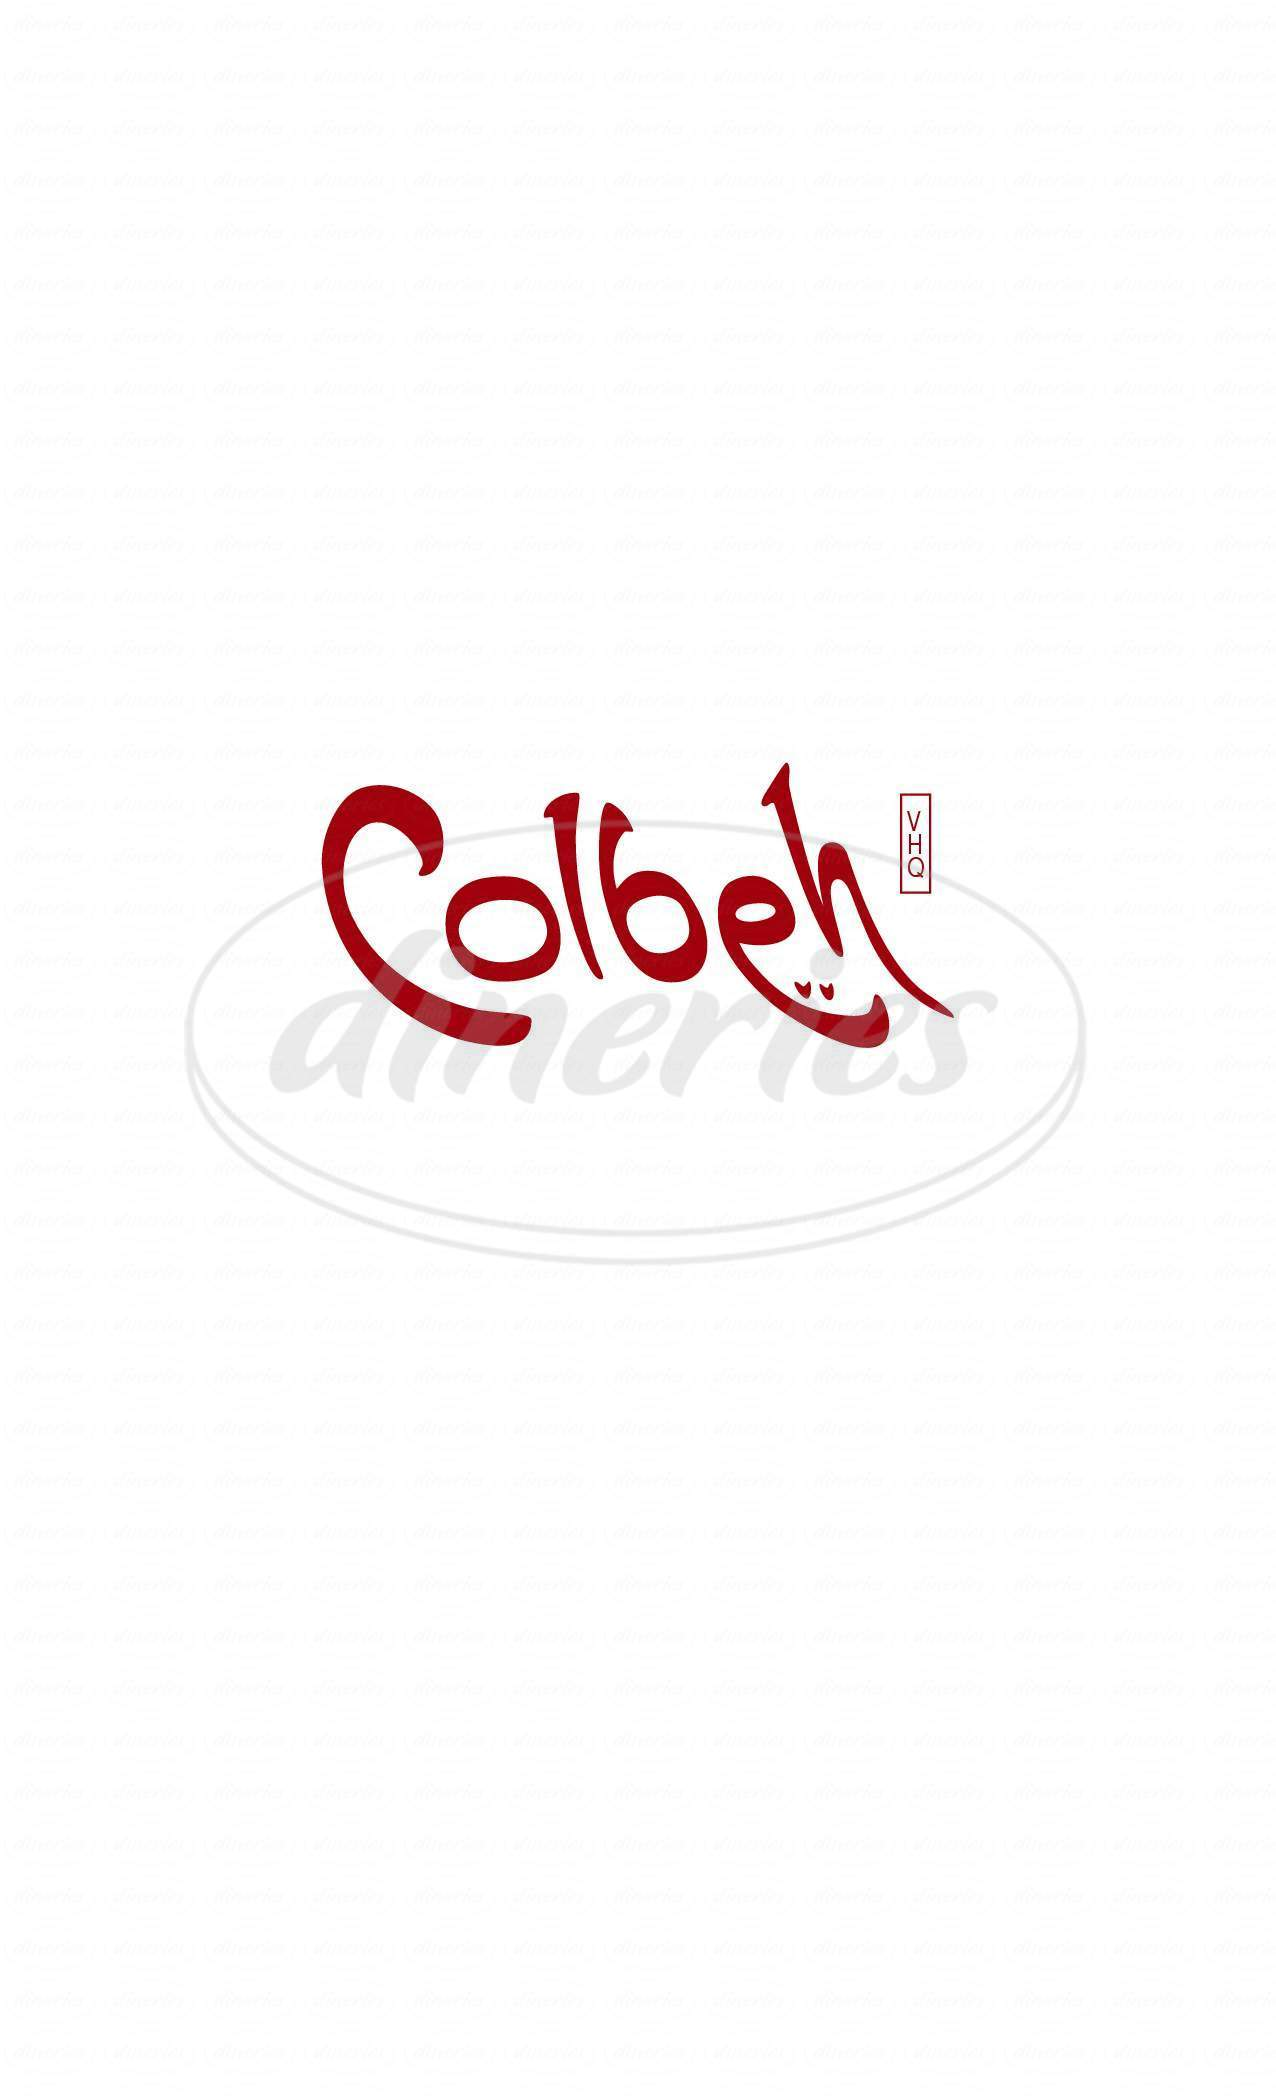 menu for Colbeh